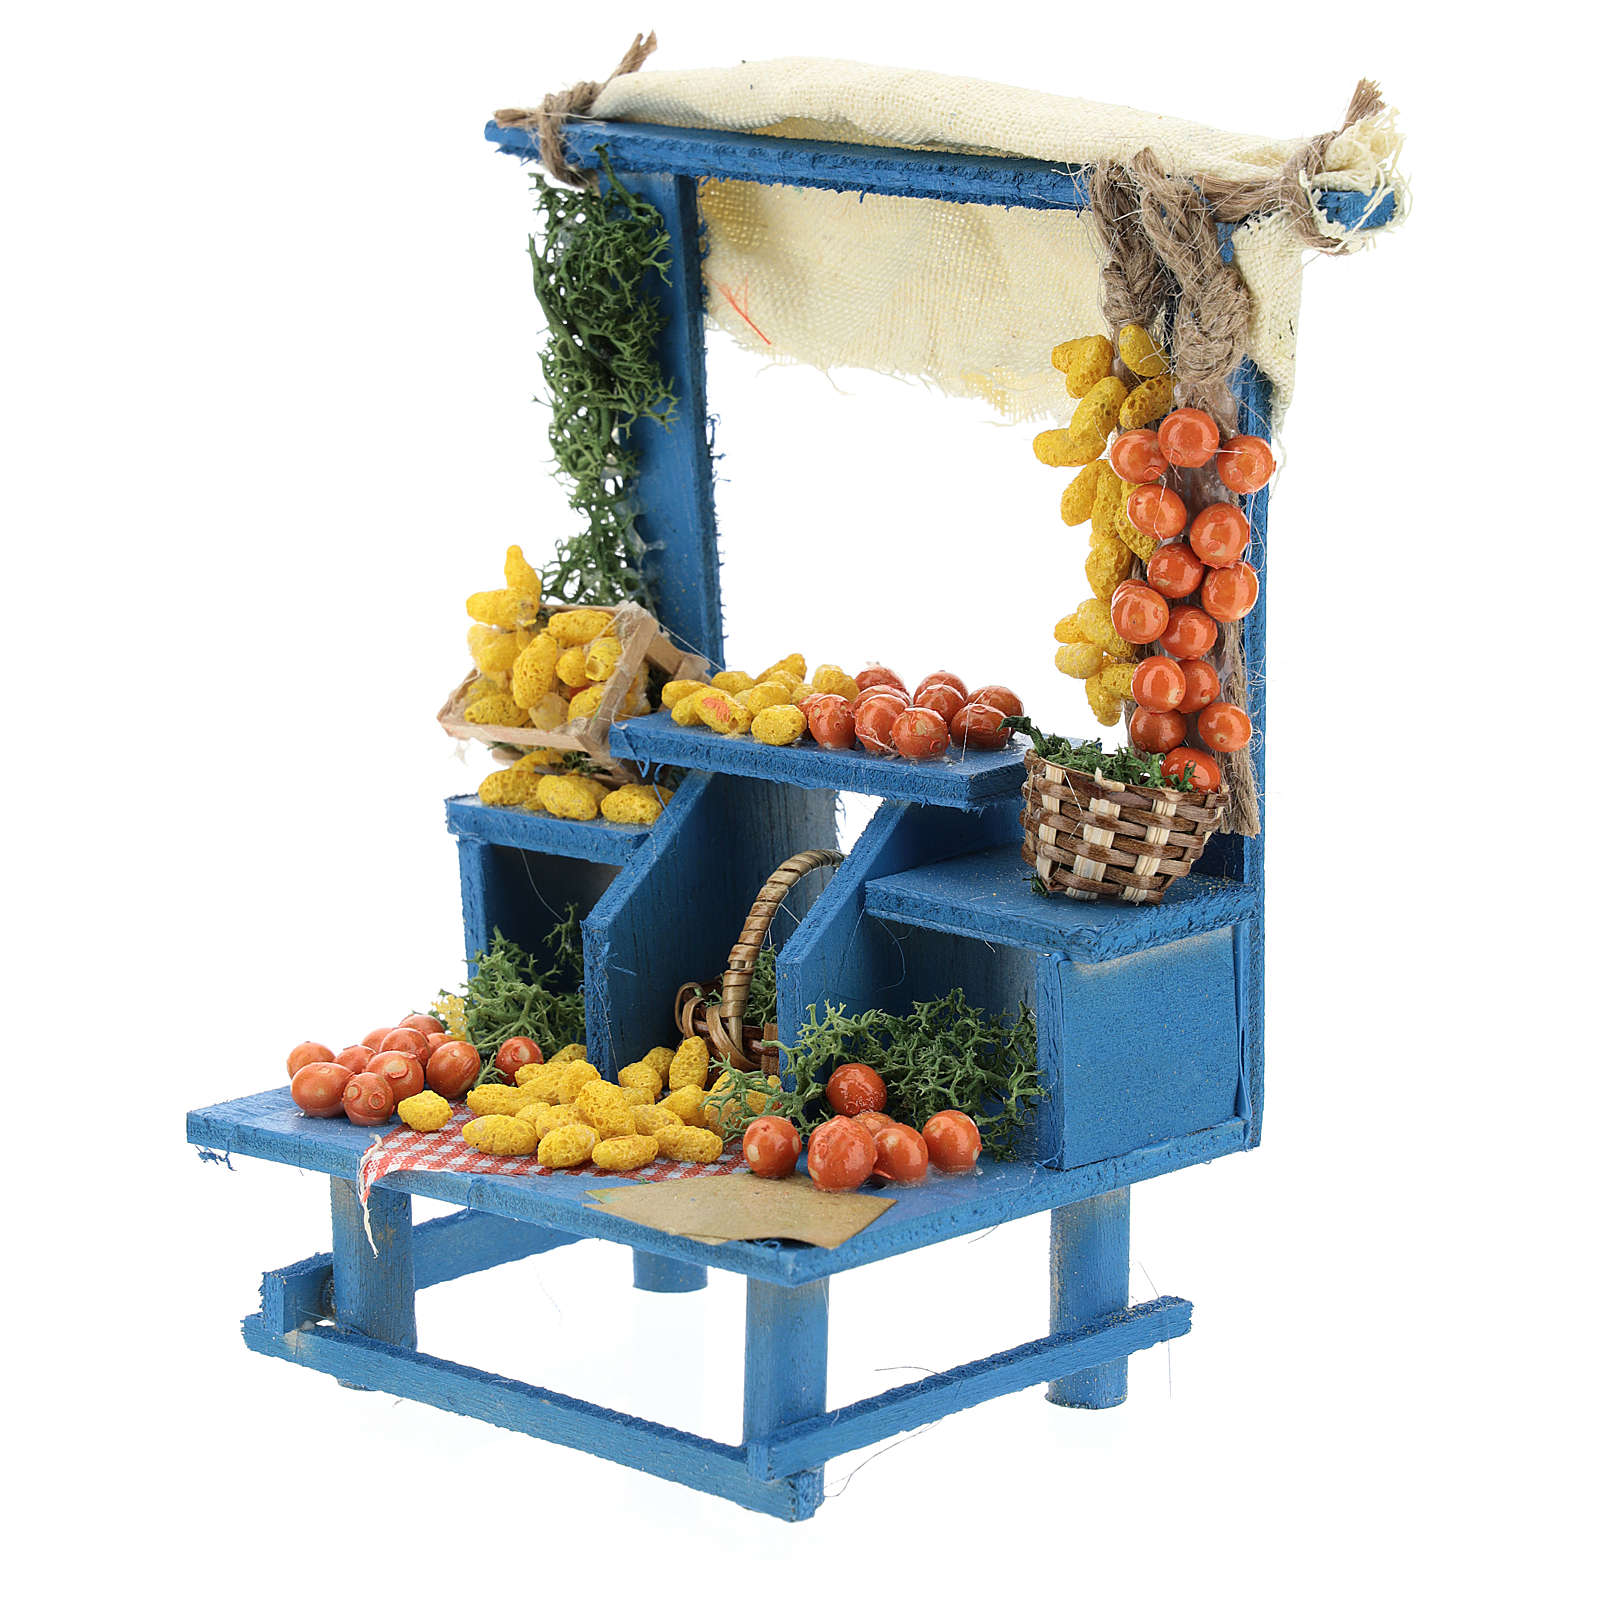 Neapolitan style fruit stand for Nativity scenes 13 cm 4